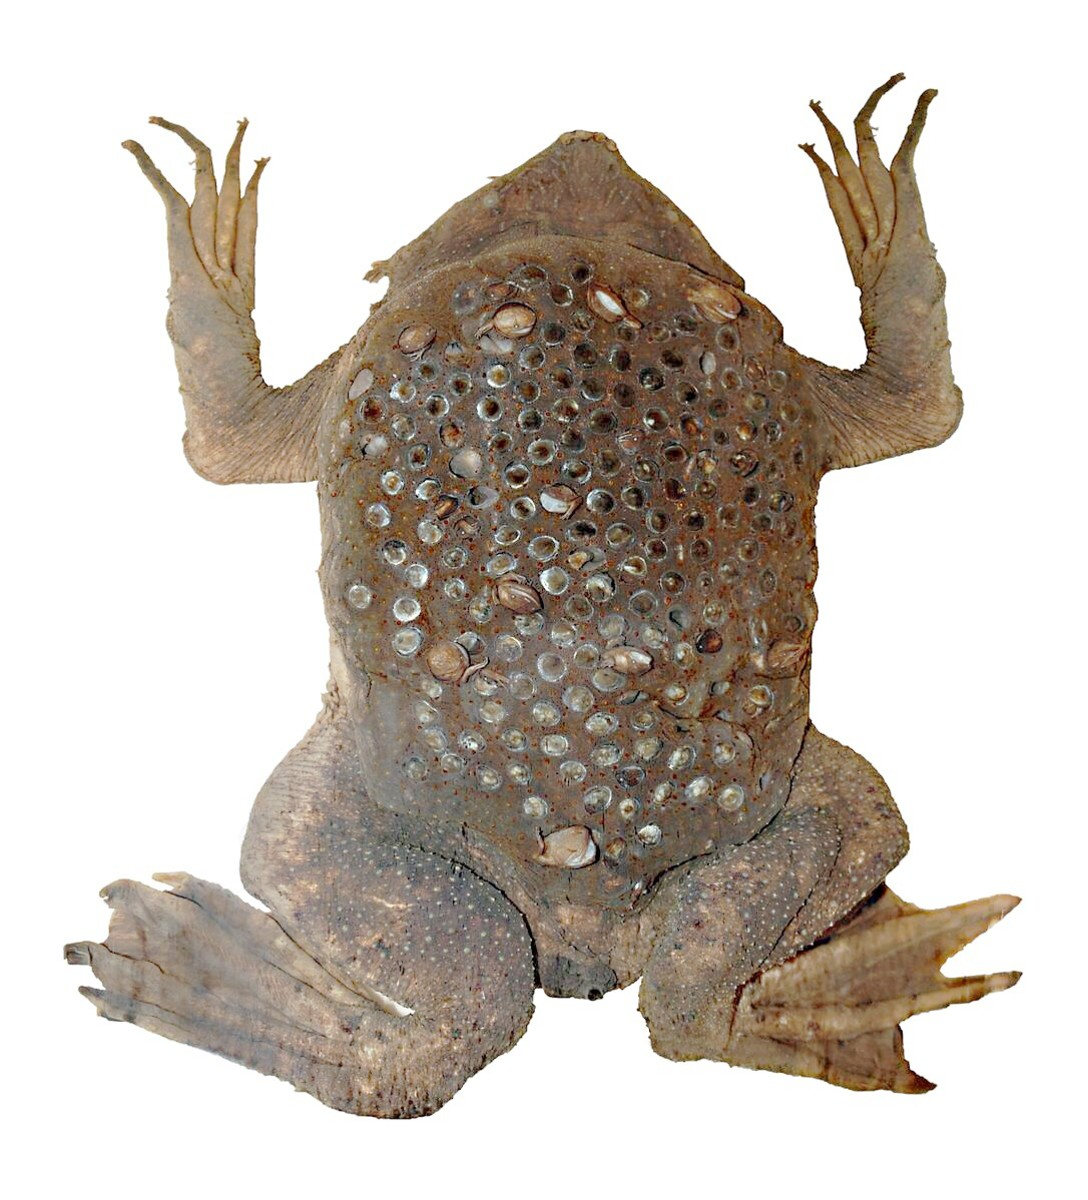 A preserved female Surinam toad, showing the chambers where the young toads developed.